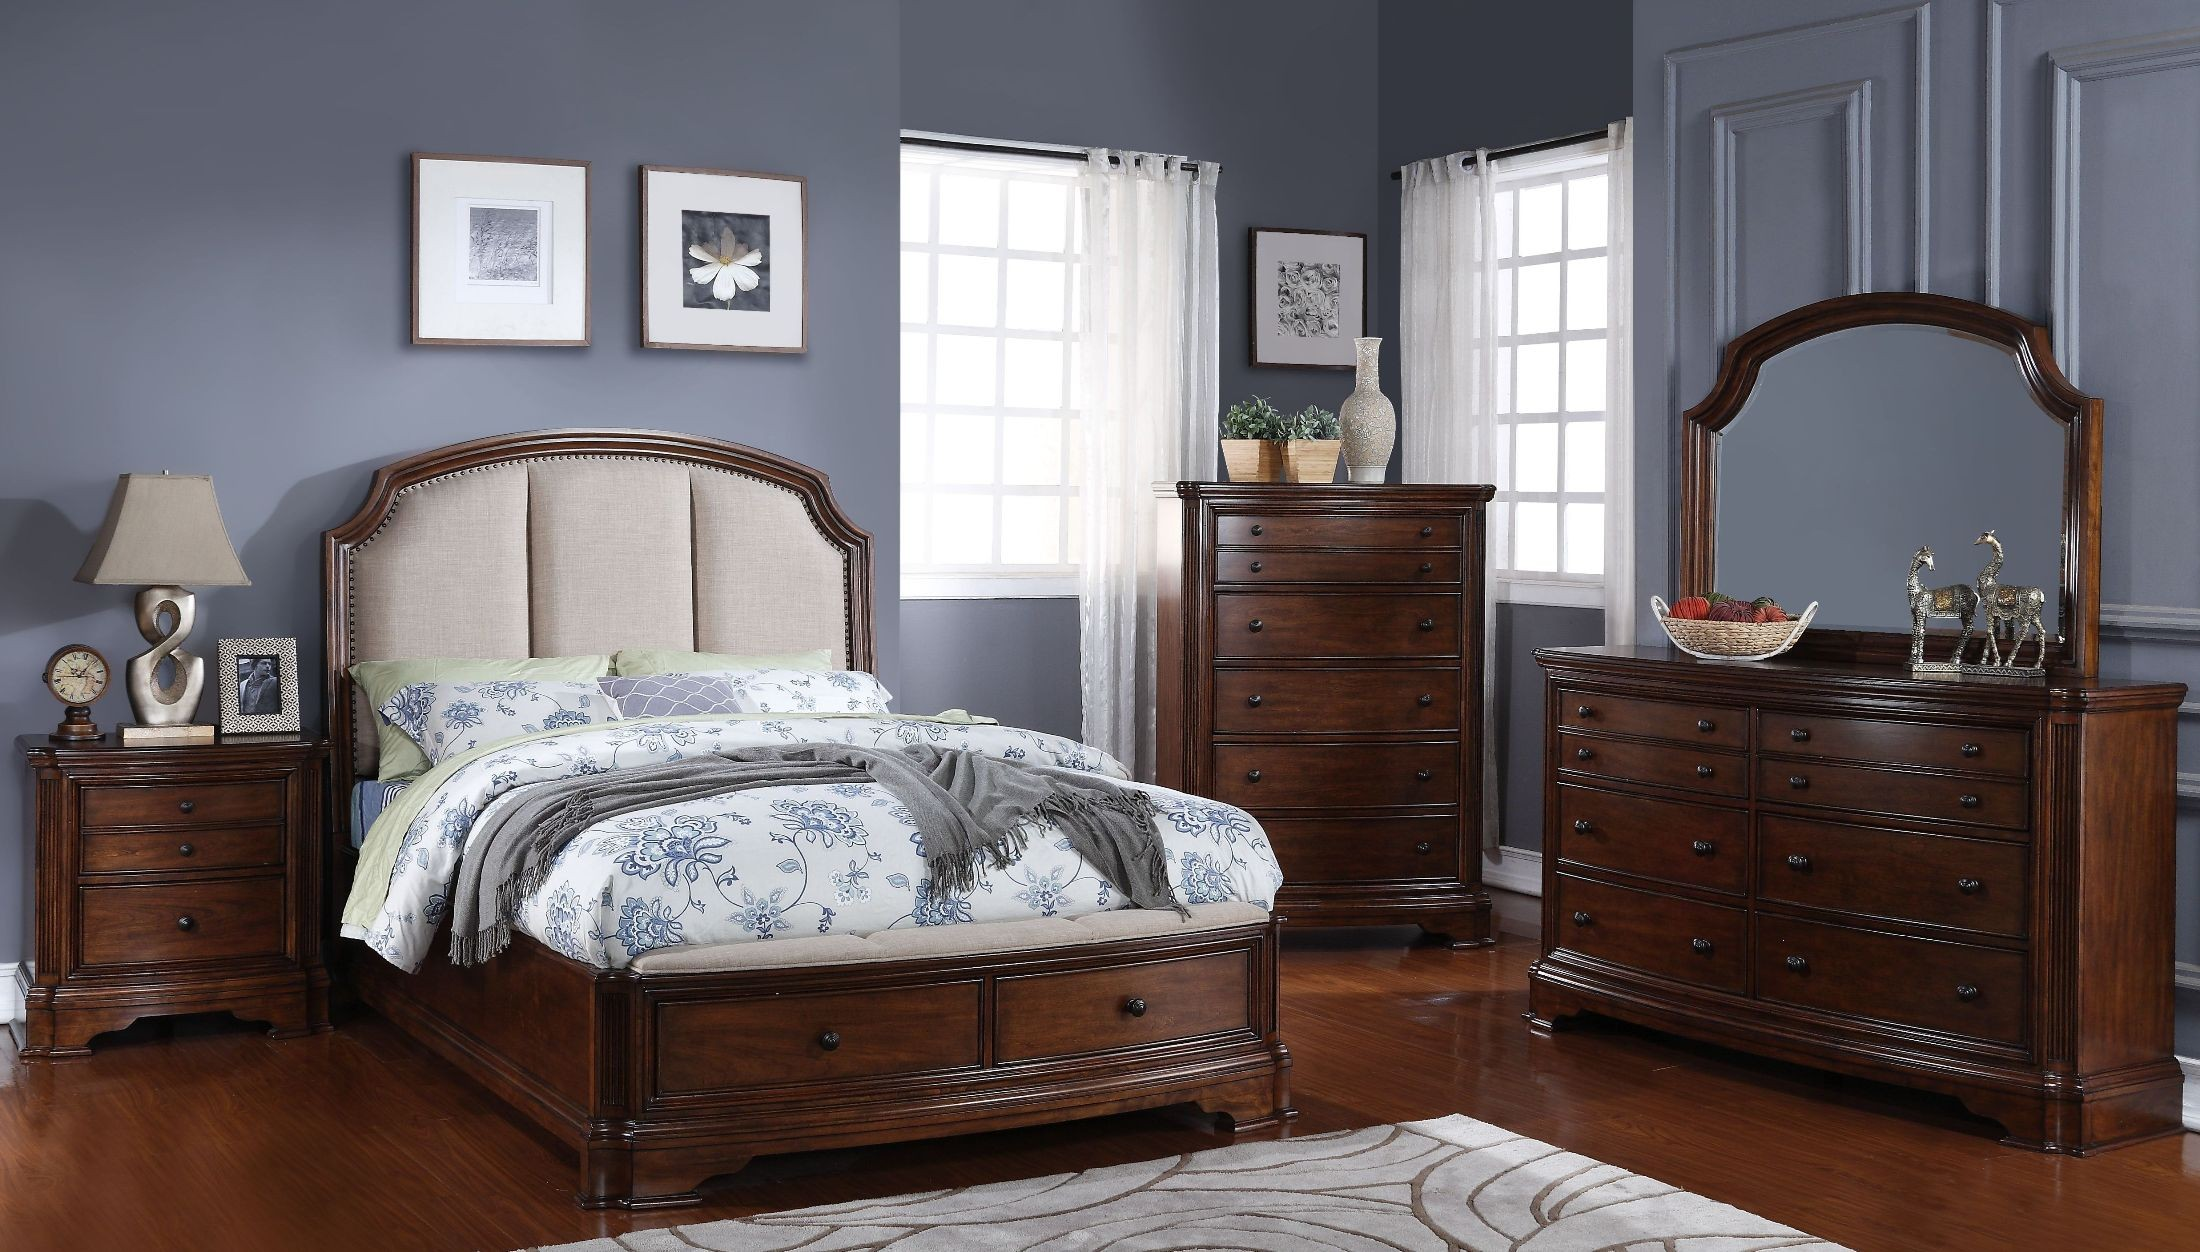 Chateaux Paix Cherry Upholstered Panel Storage Bedroom Set From New Classic Coleman Furniture